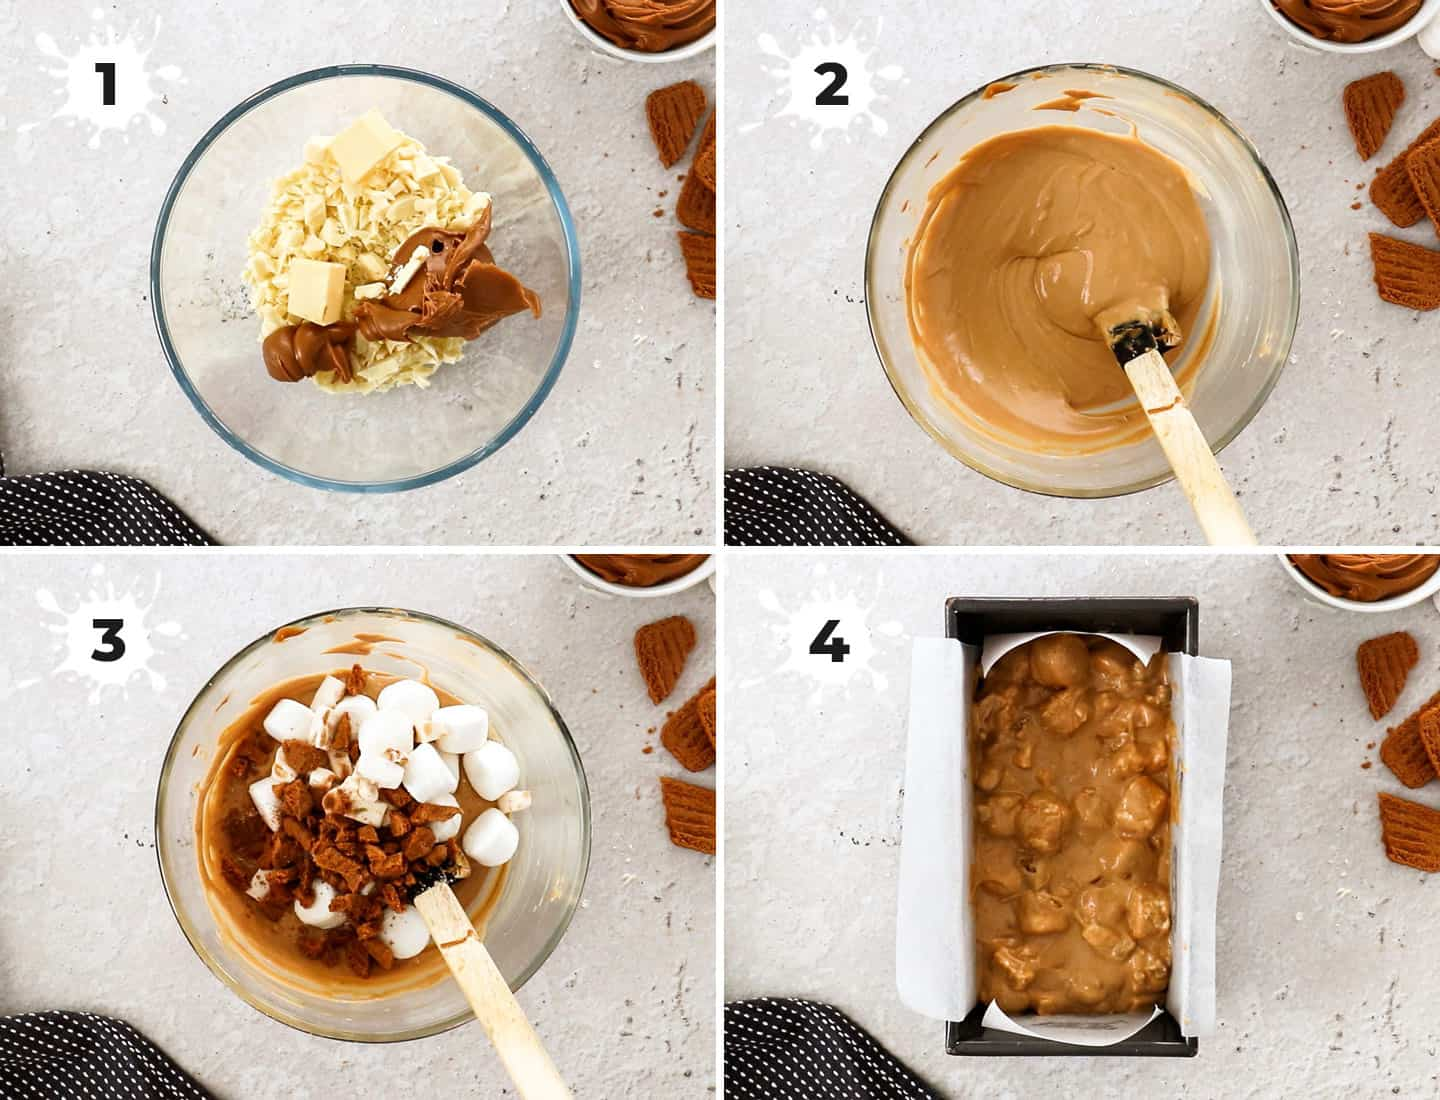 A collage of 4 images showing how to make biscoff rocky road.